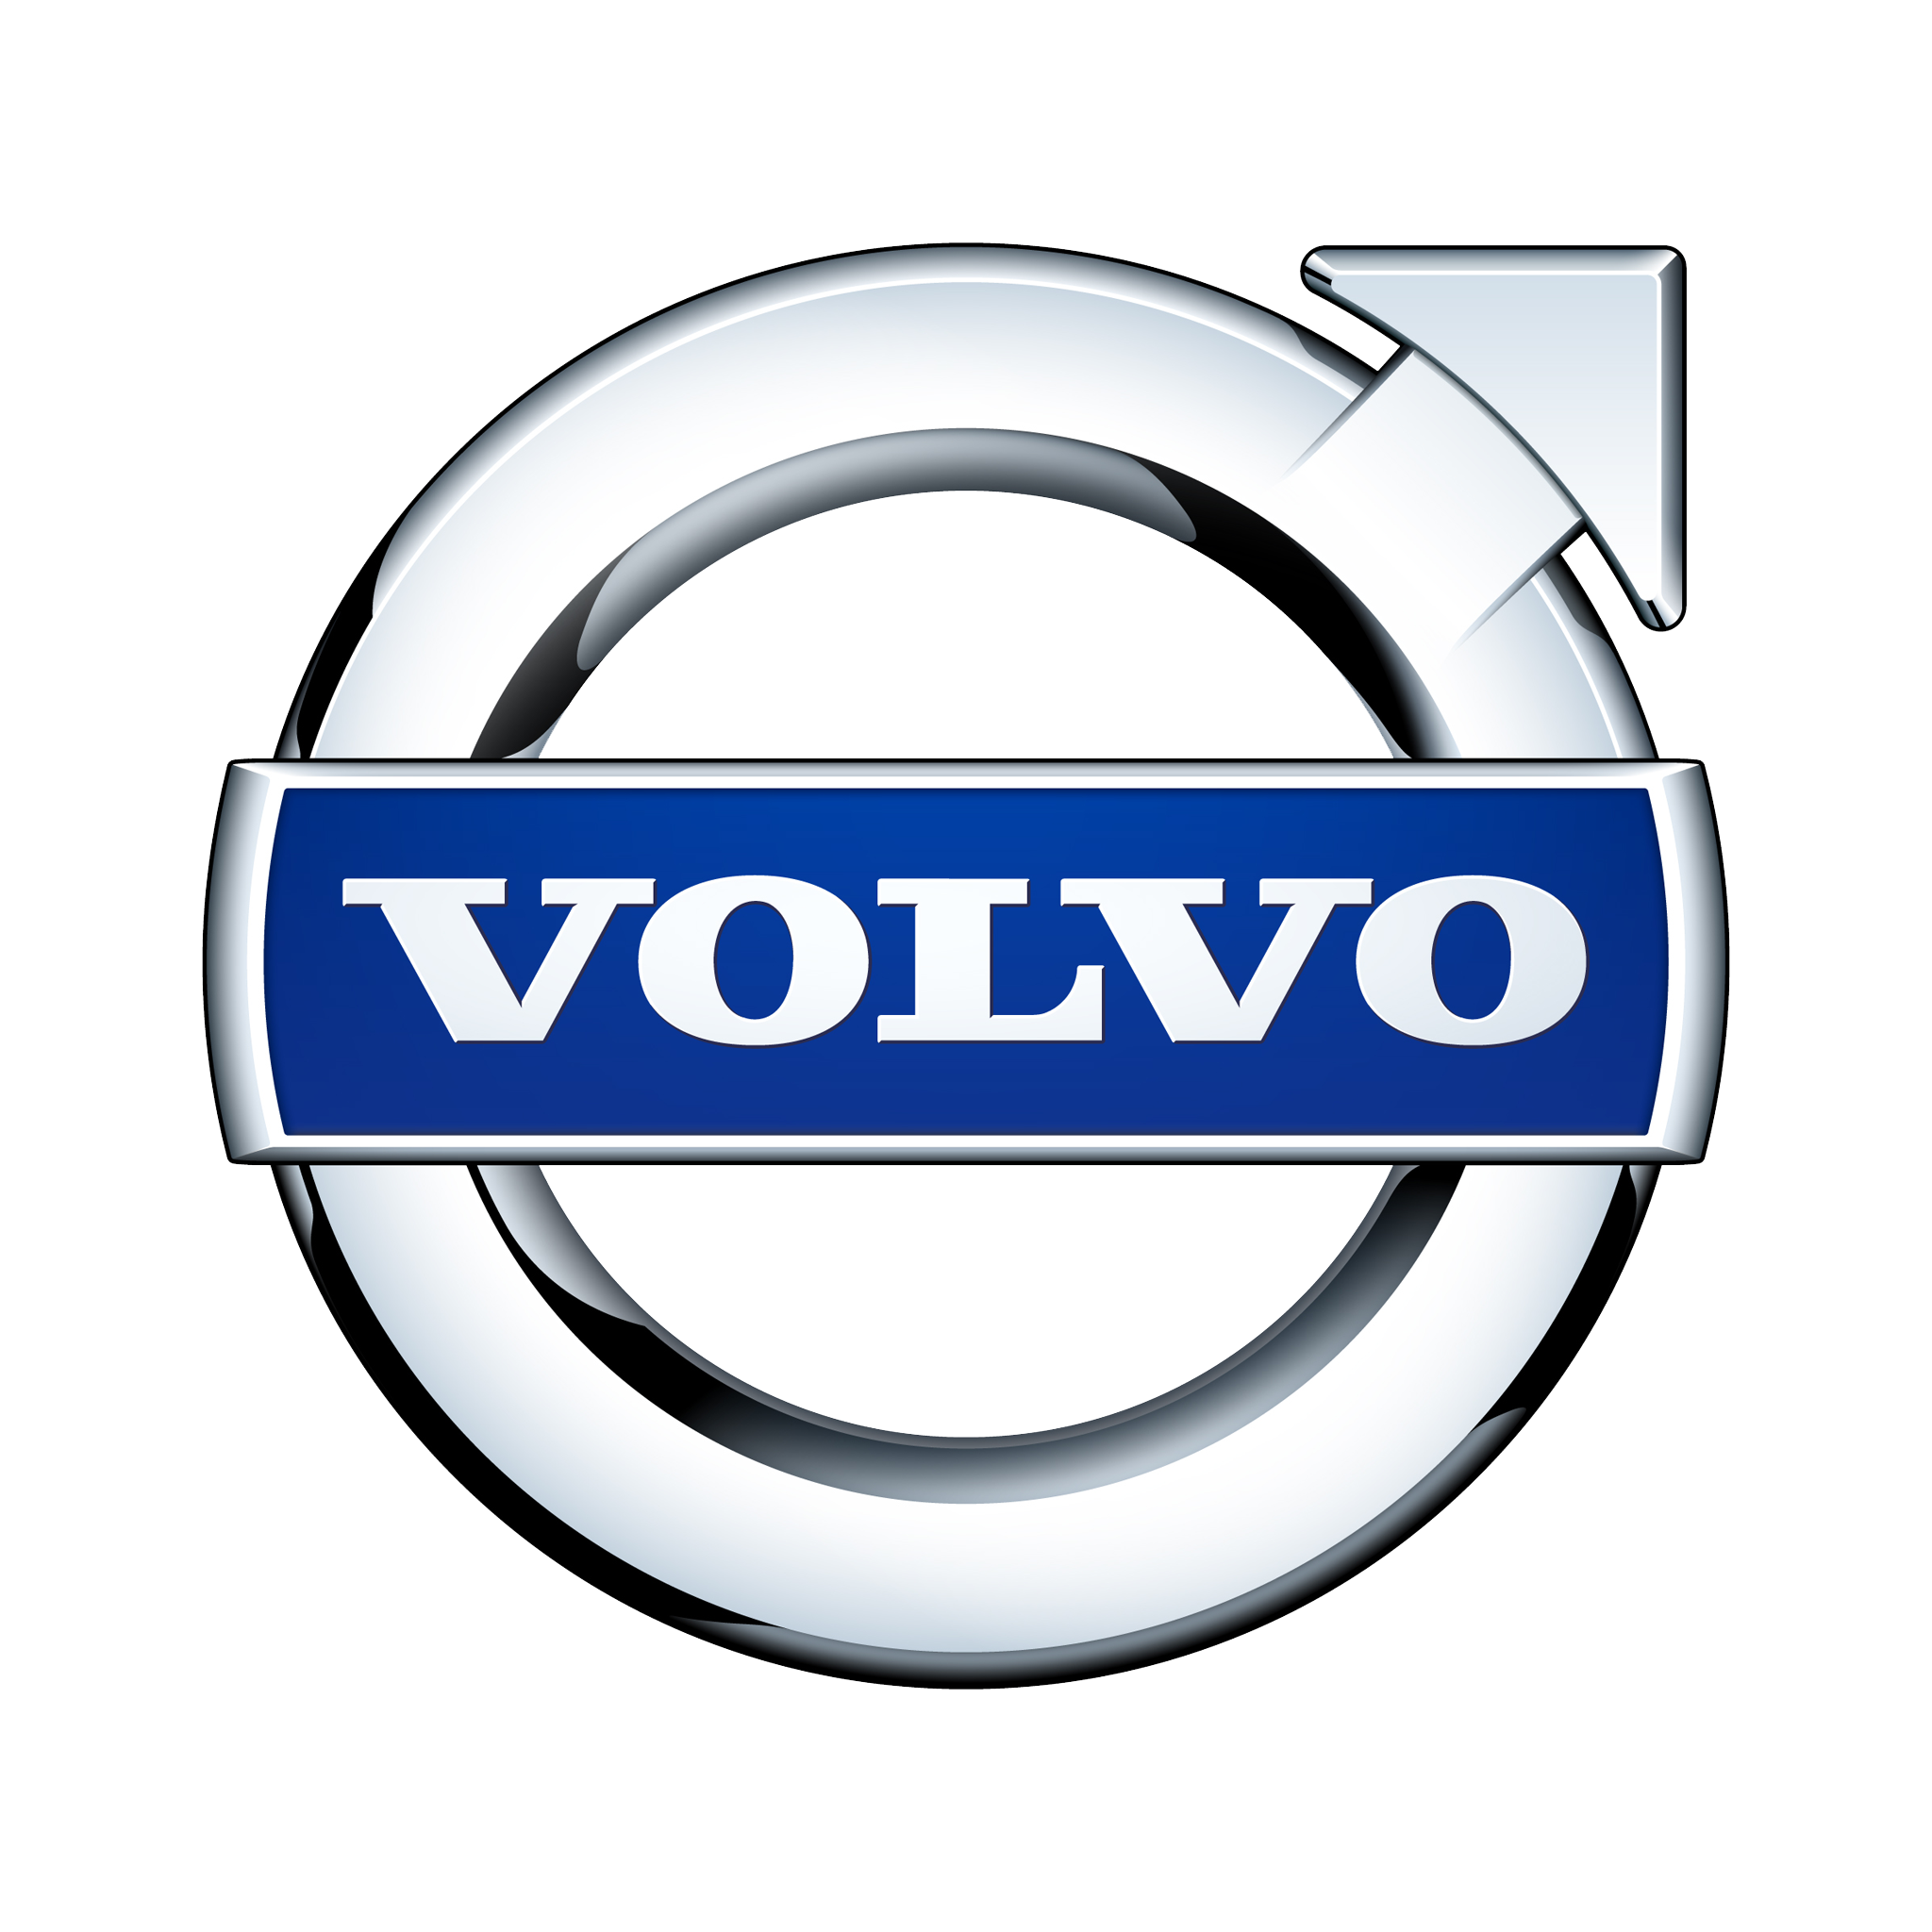 Volvo Logo Hd Png Meaning Information Carlogos Org